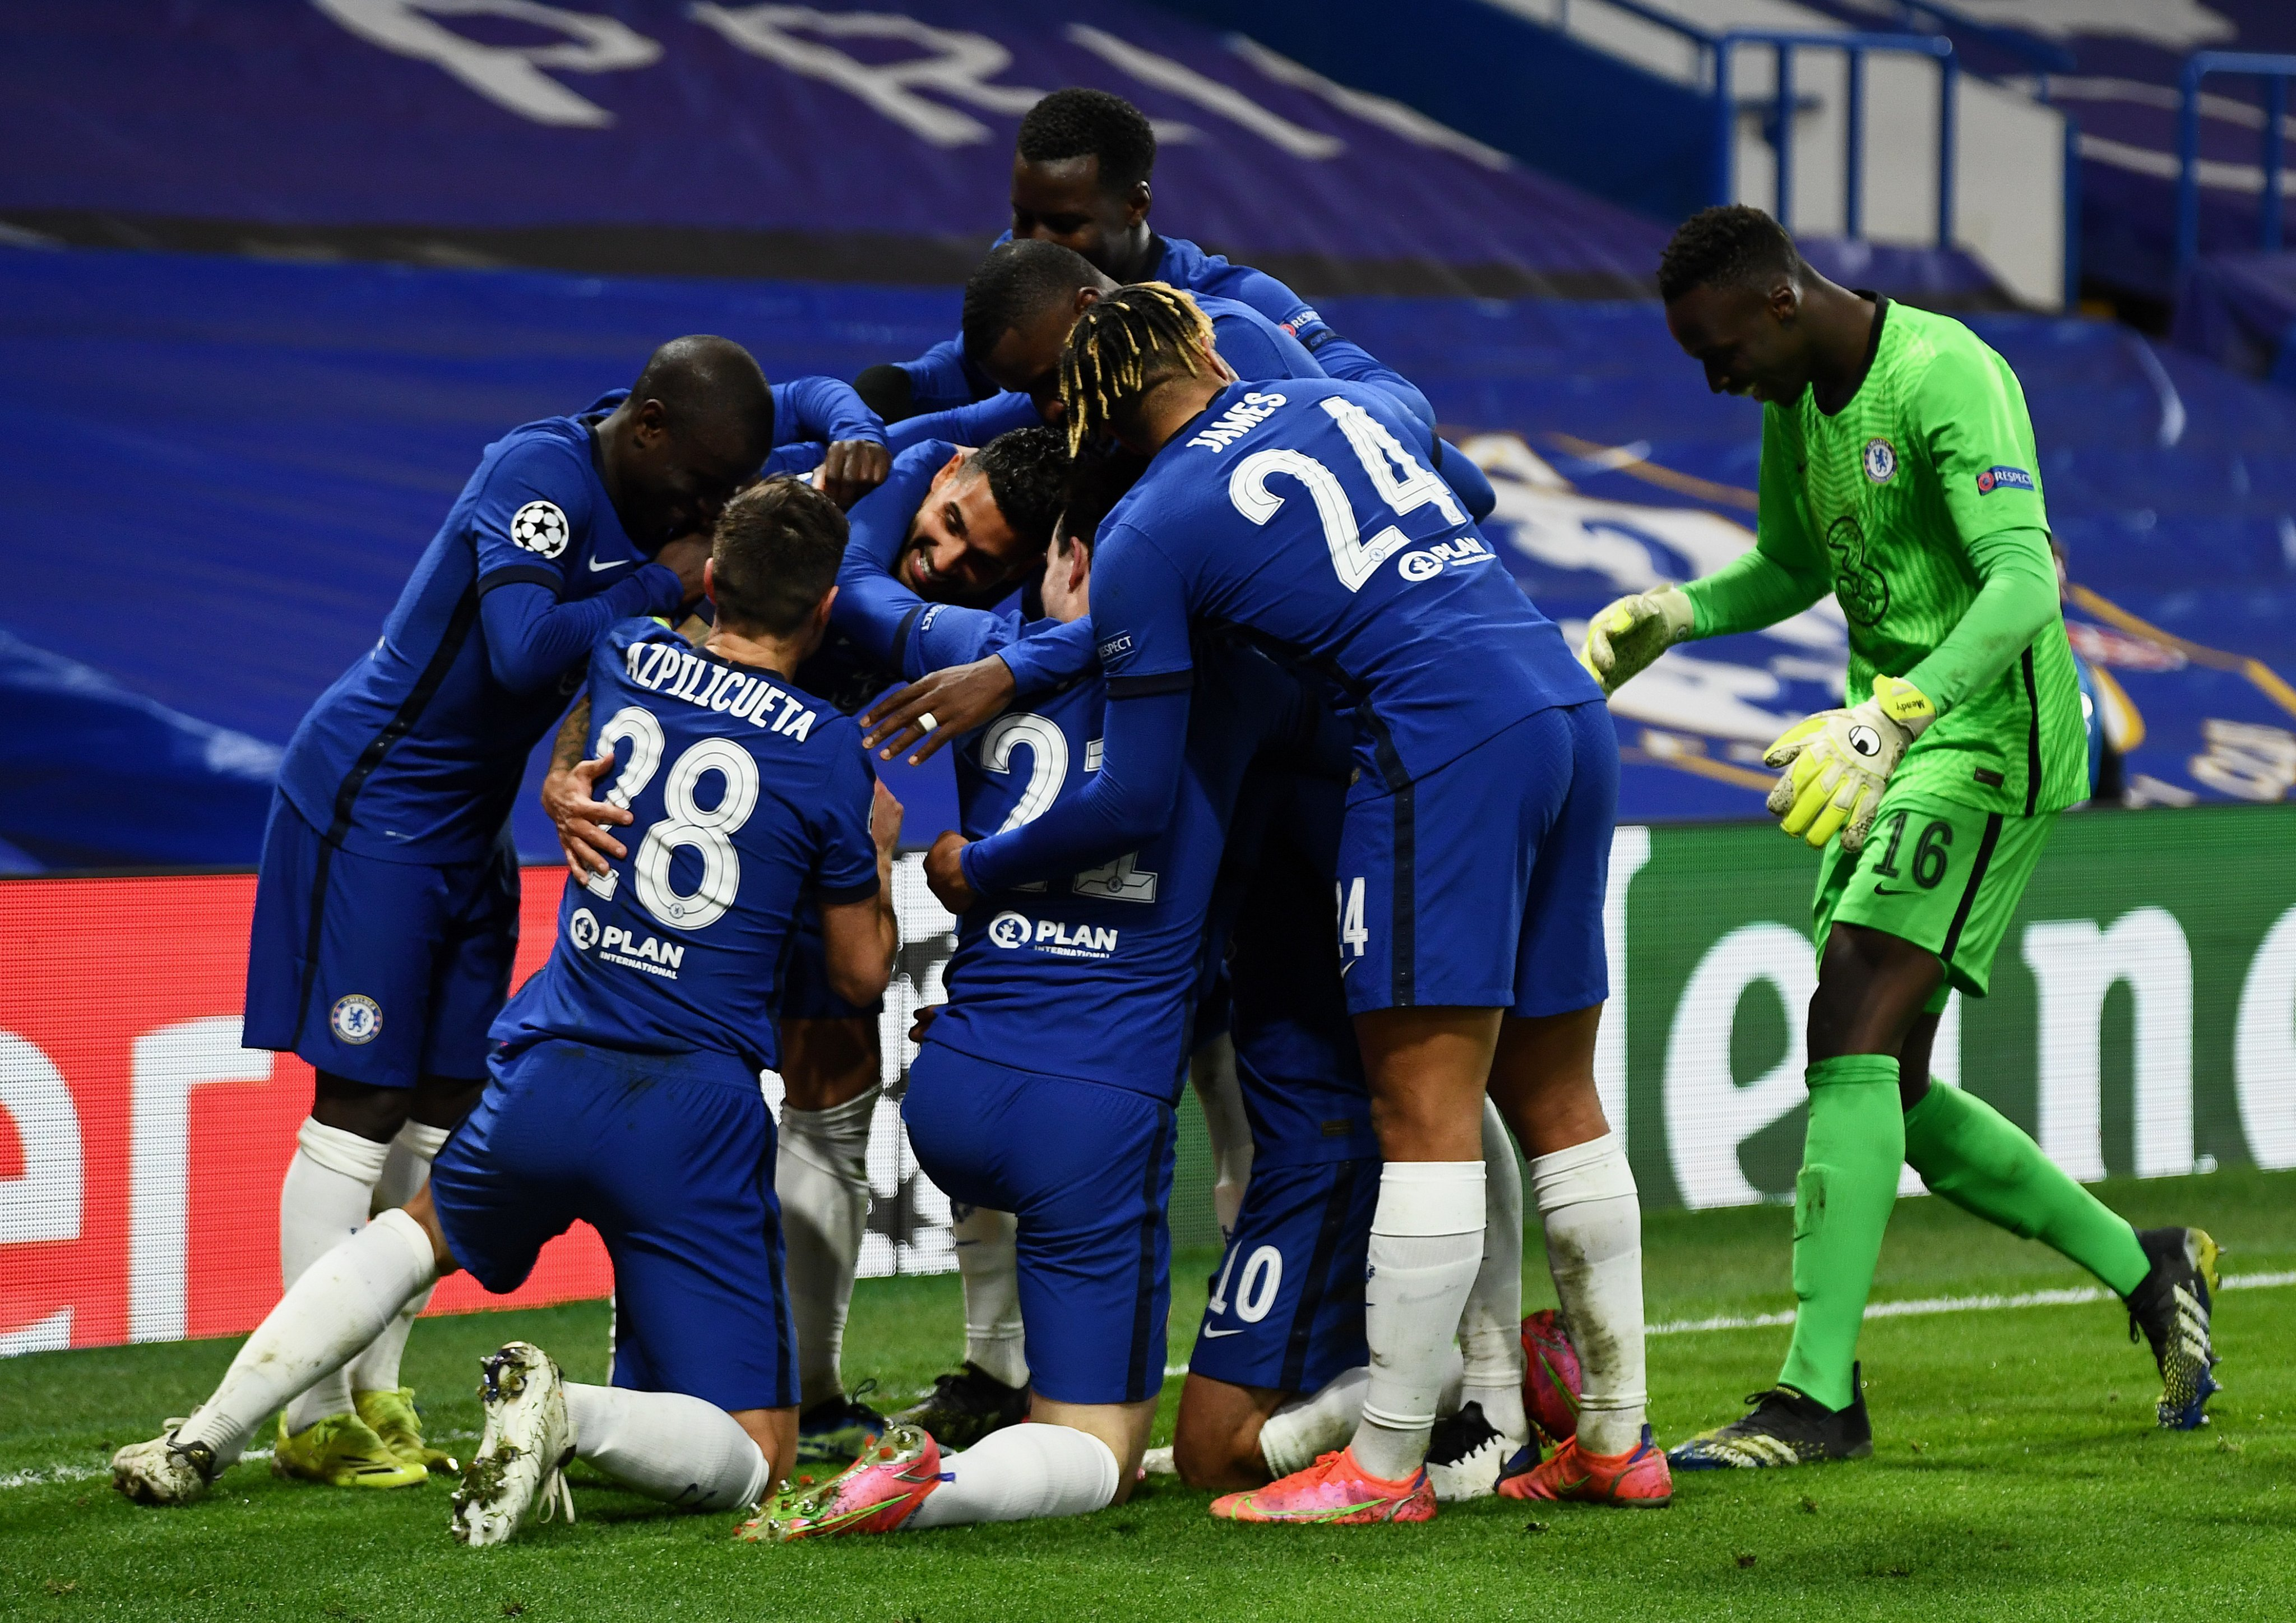 Chelsea 2-0 Atletico Madrid: Chiến thắng thuyết phục